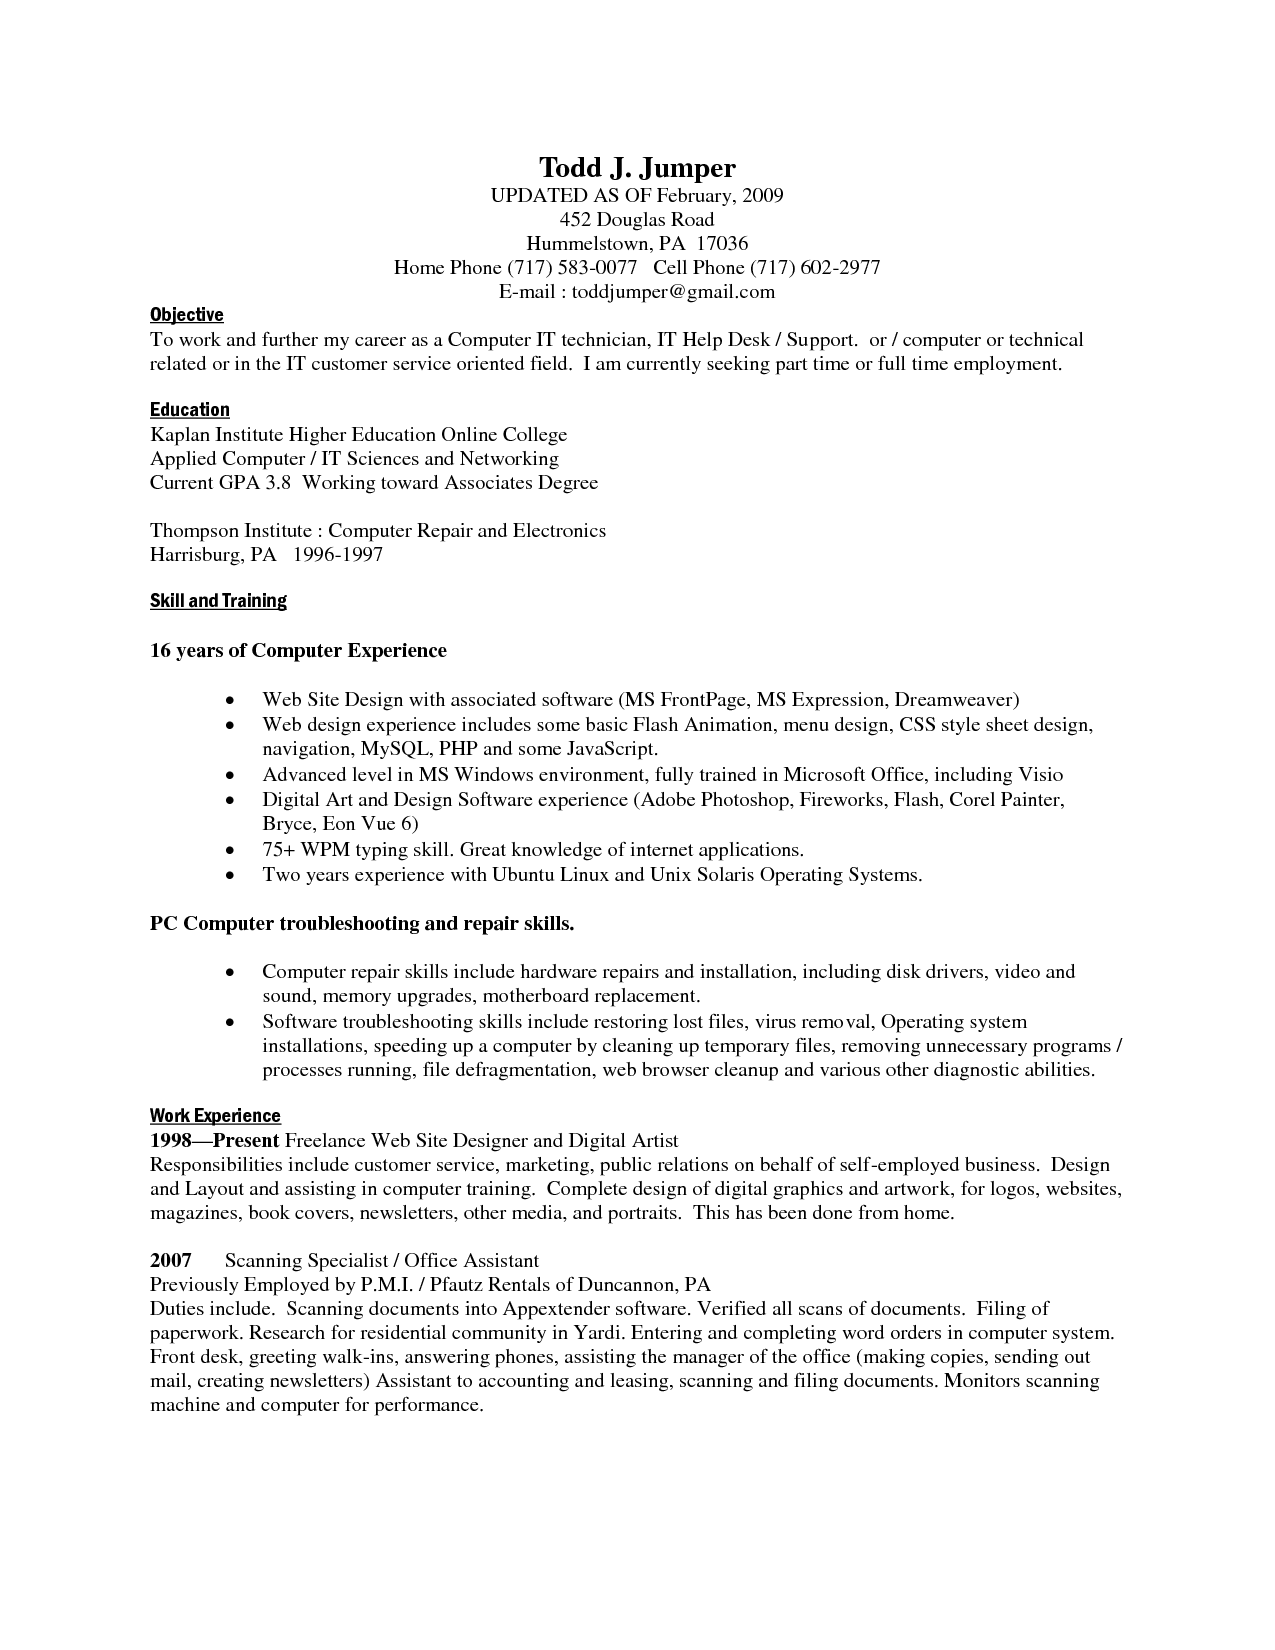 Computer Skills On Sample Resume - http://www.resumecareer.info ...